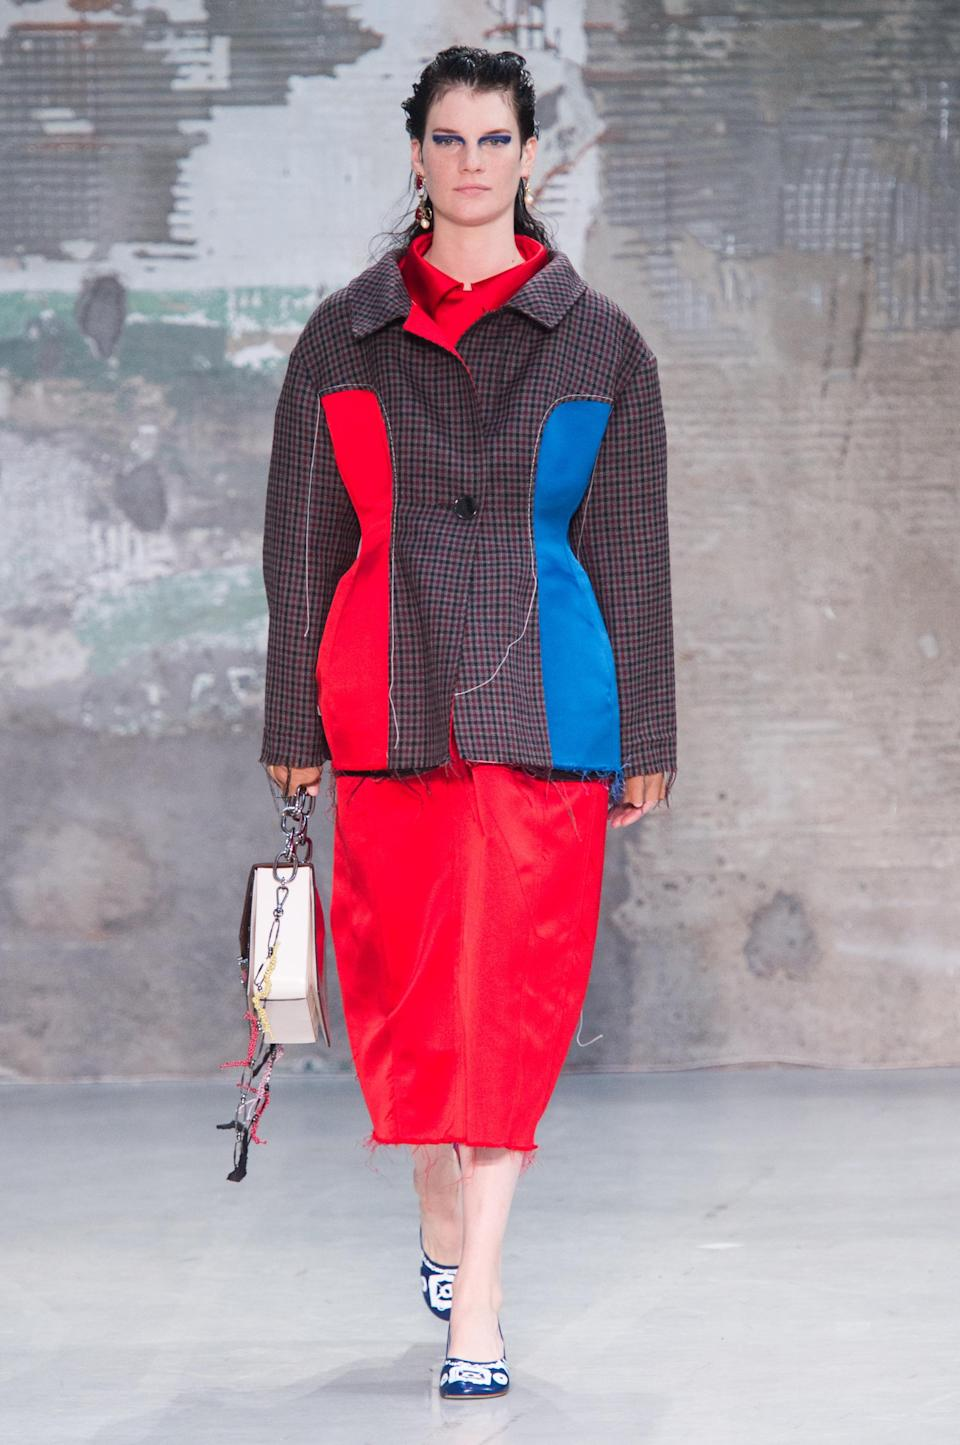 <p><i>Model wears a boxy red and blue panel jacket and collared dress from the SS18 Marni collection. (Photo: ImaxTree) </i></p>